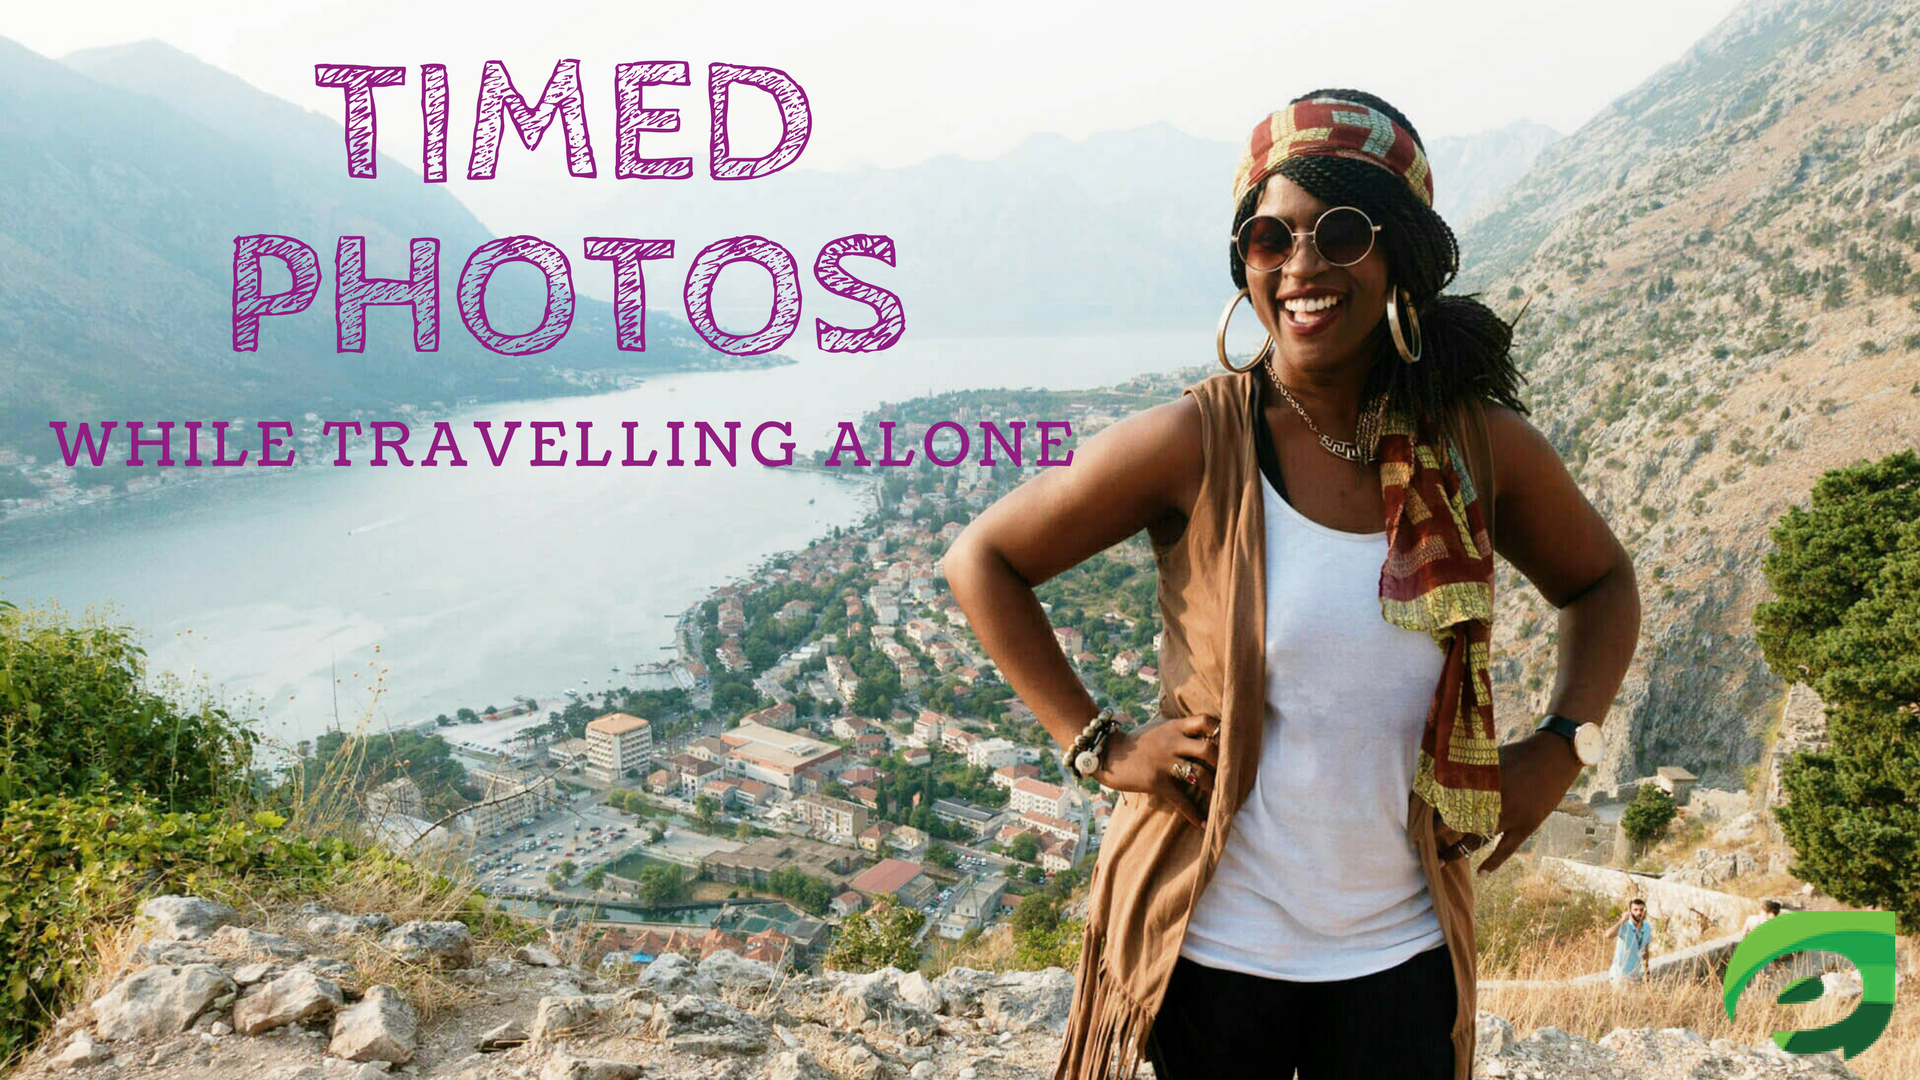 taking photos when traveling alone- timed photos